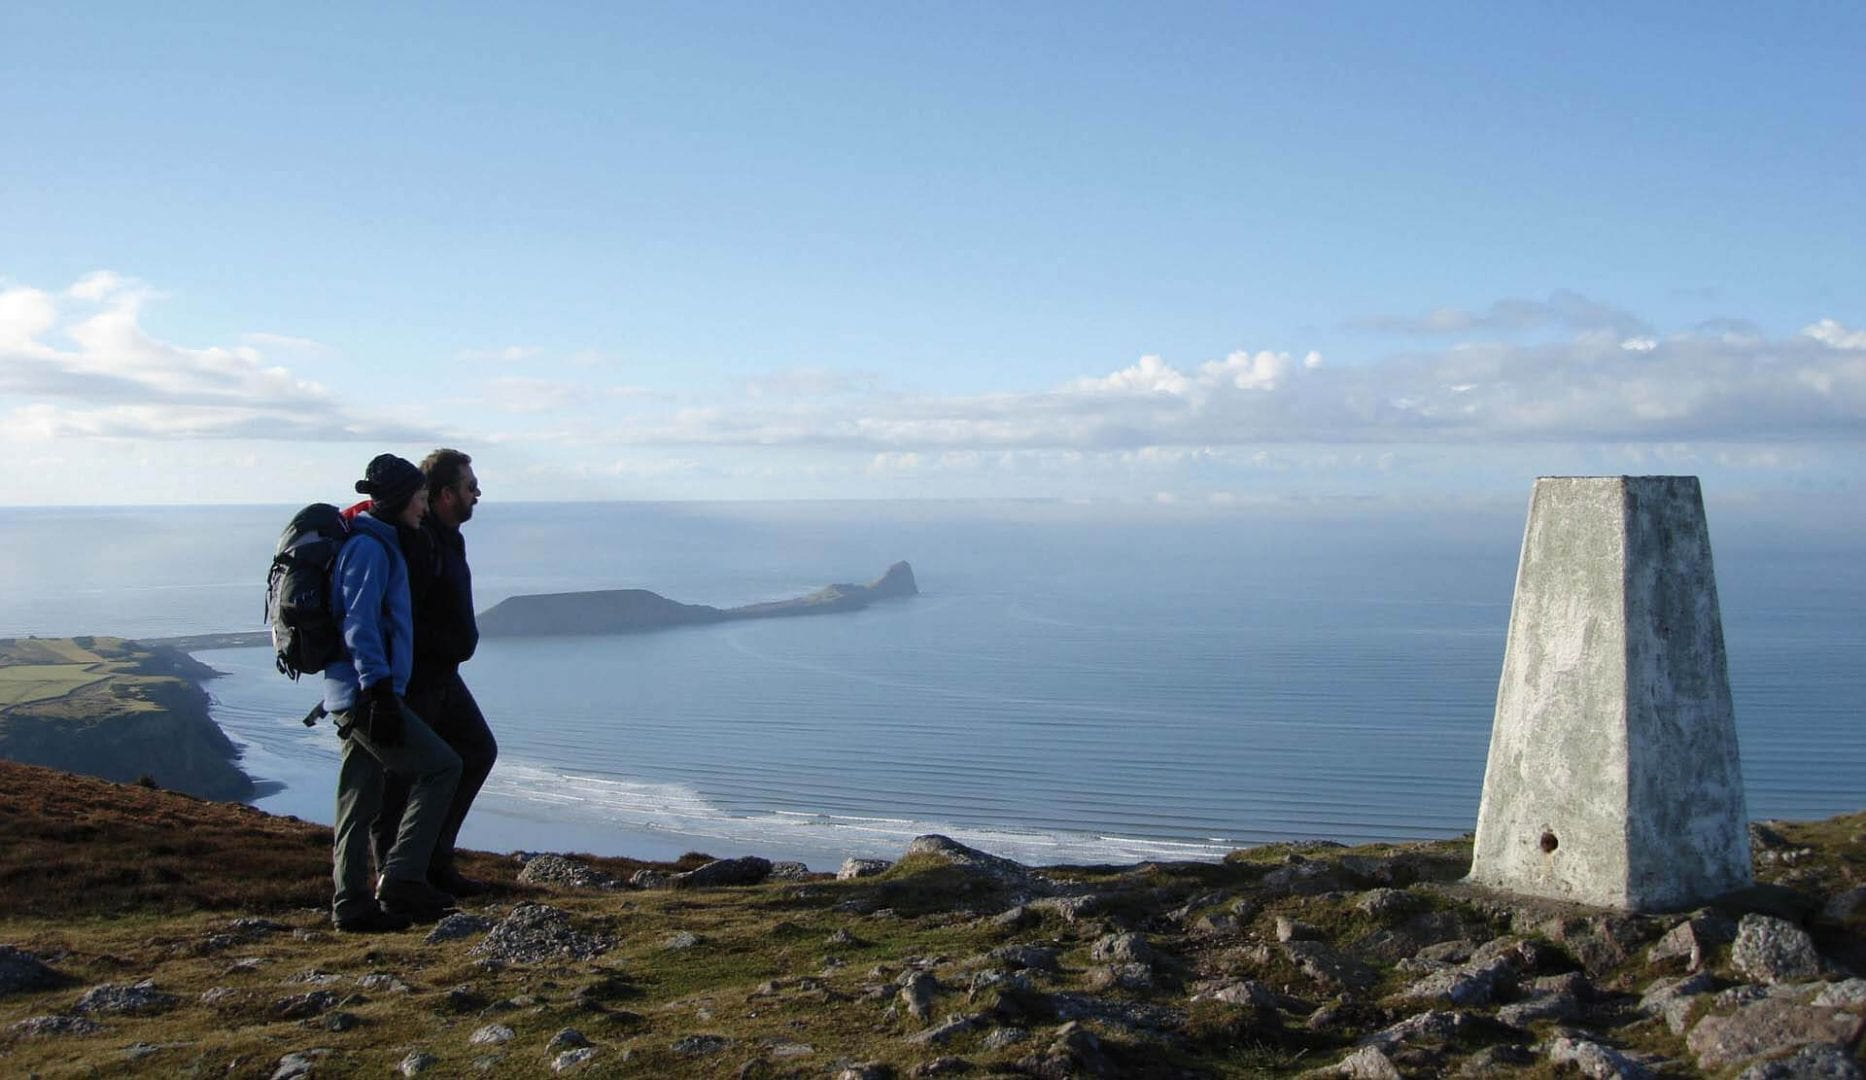 rhossili bunkhouse and the gower walking festival